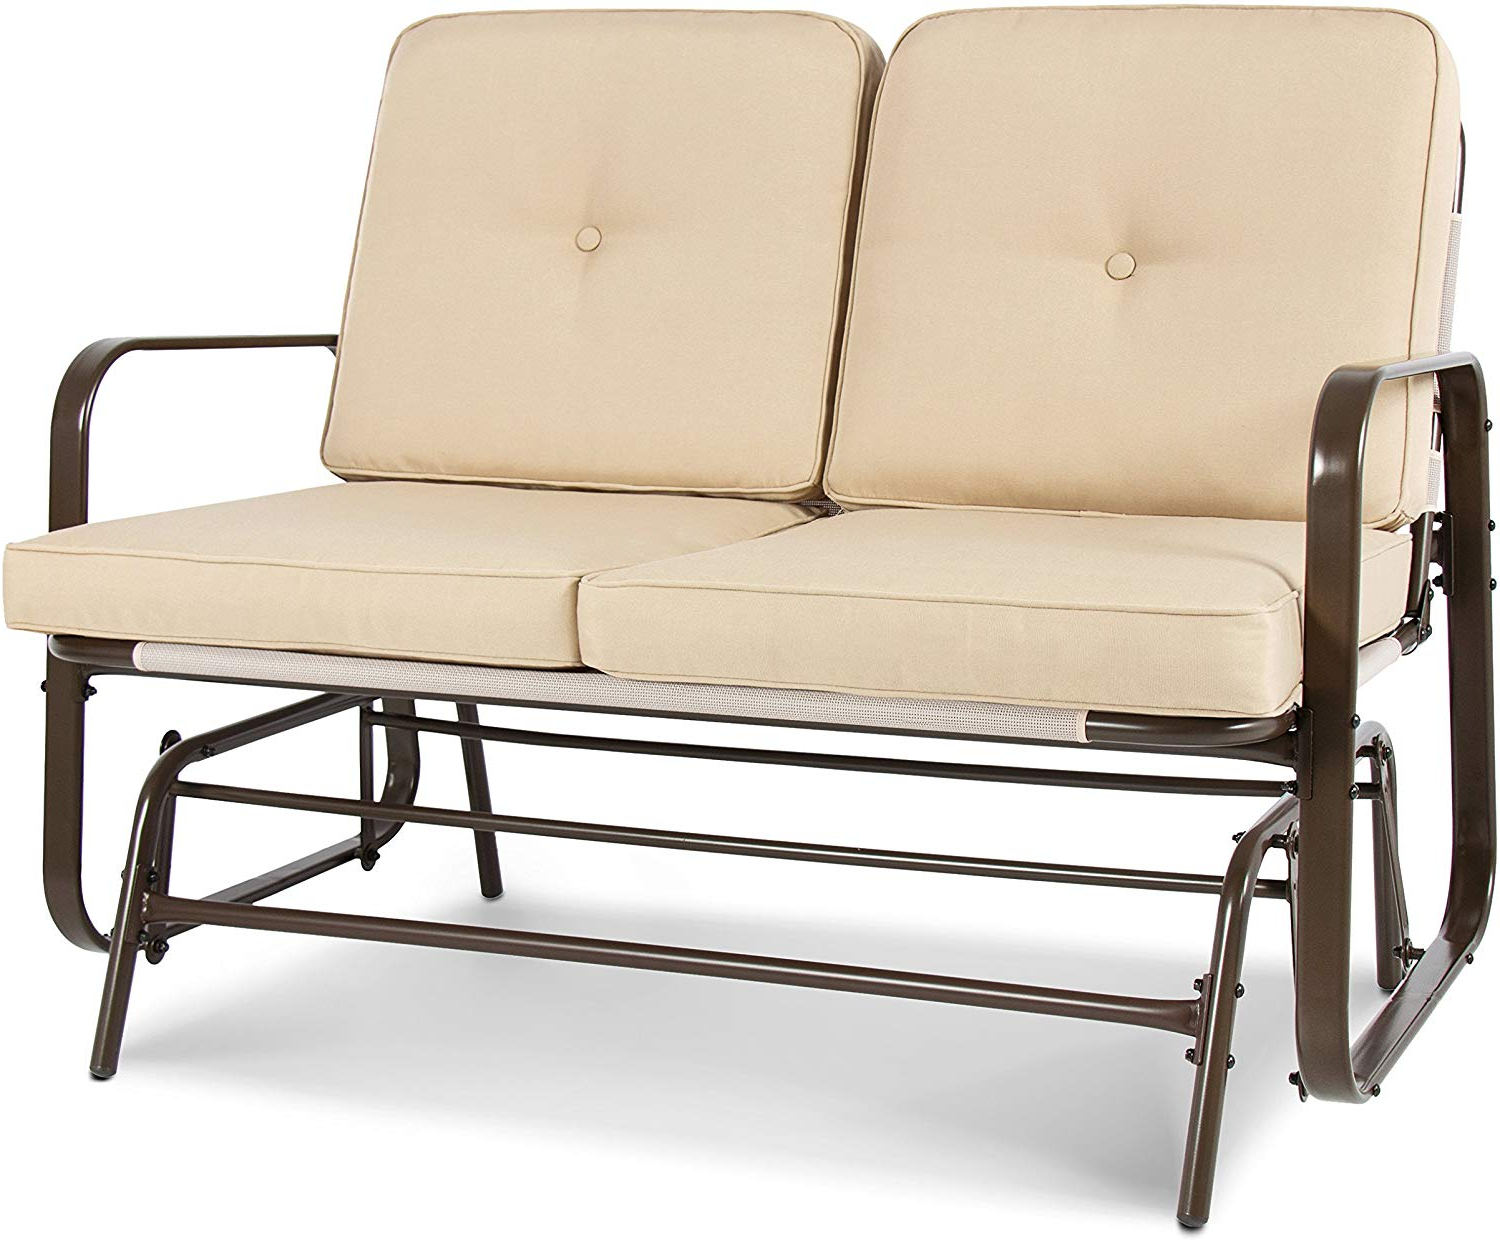 Loveseat Glider Benches In Widely Used Best Choice Products 2 Person Outdoor Mesh Patio Double Glider W/ Tempered Glass Attached Table, Beige (View 16 of 30)